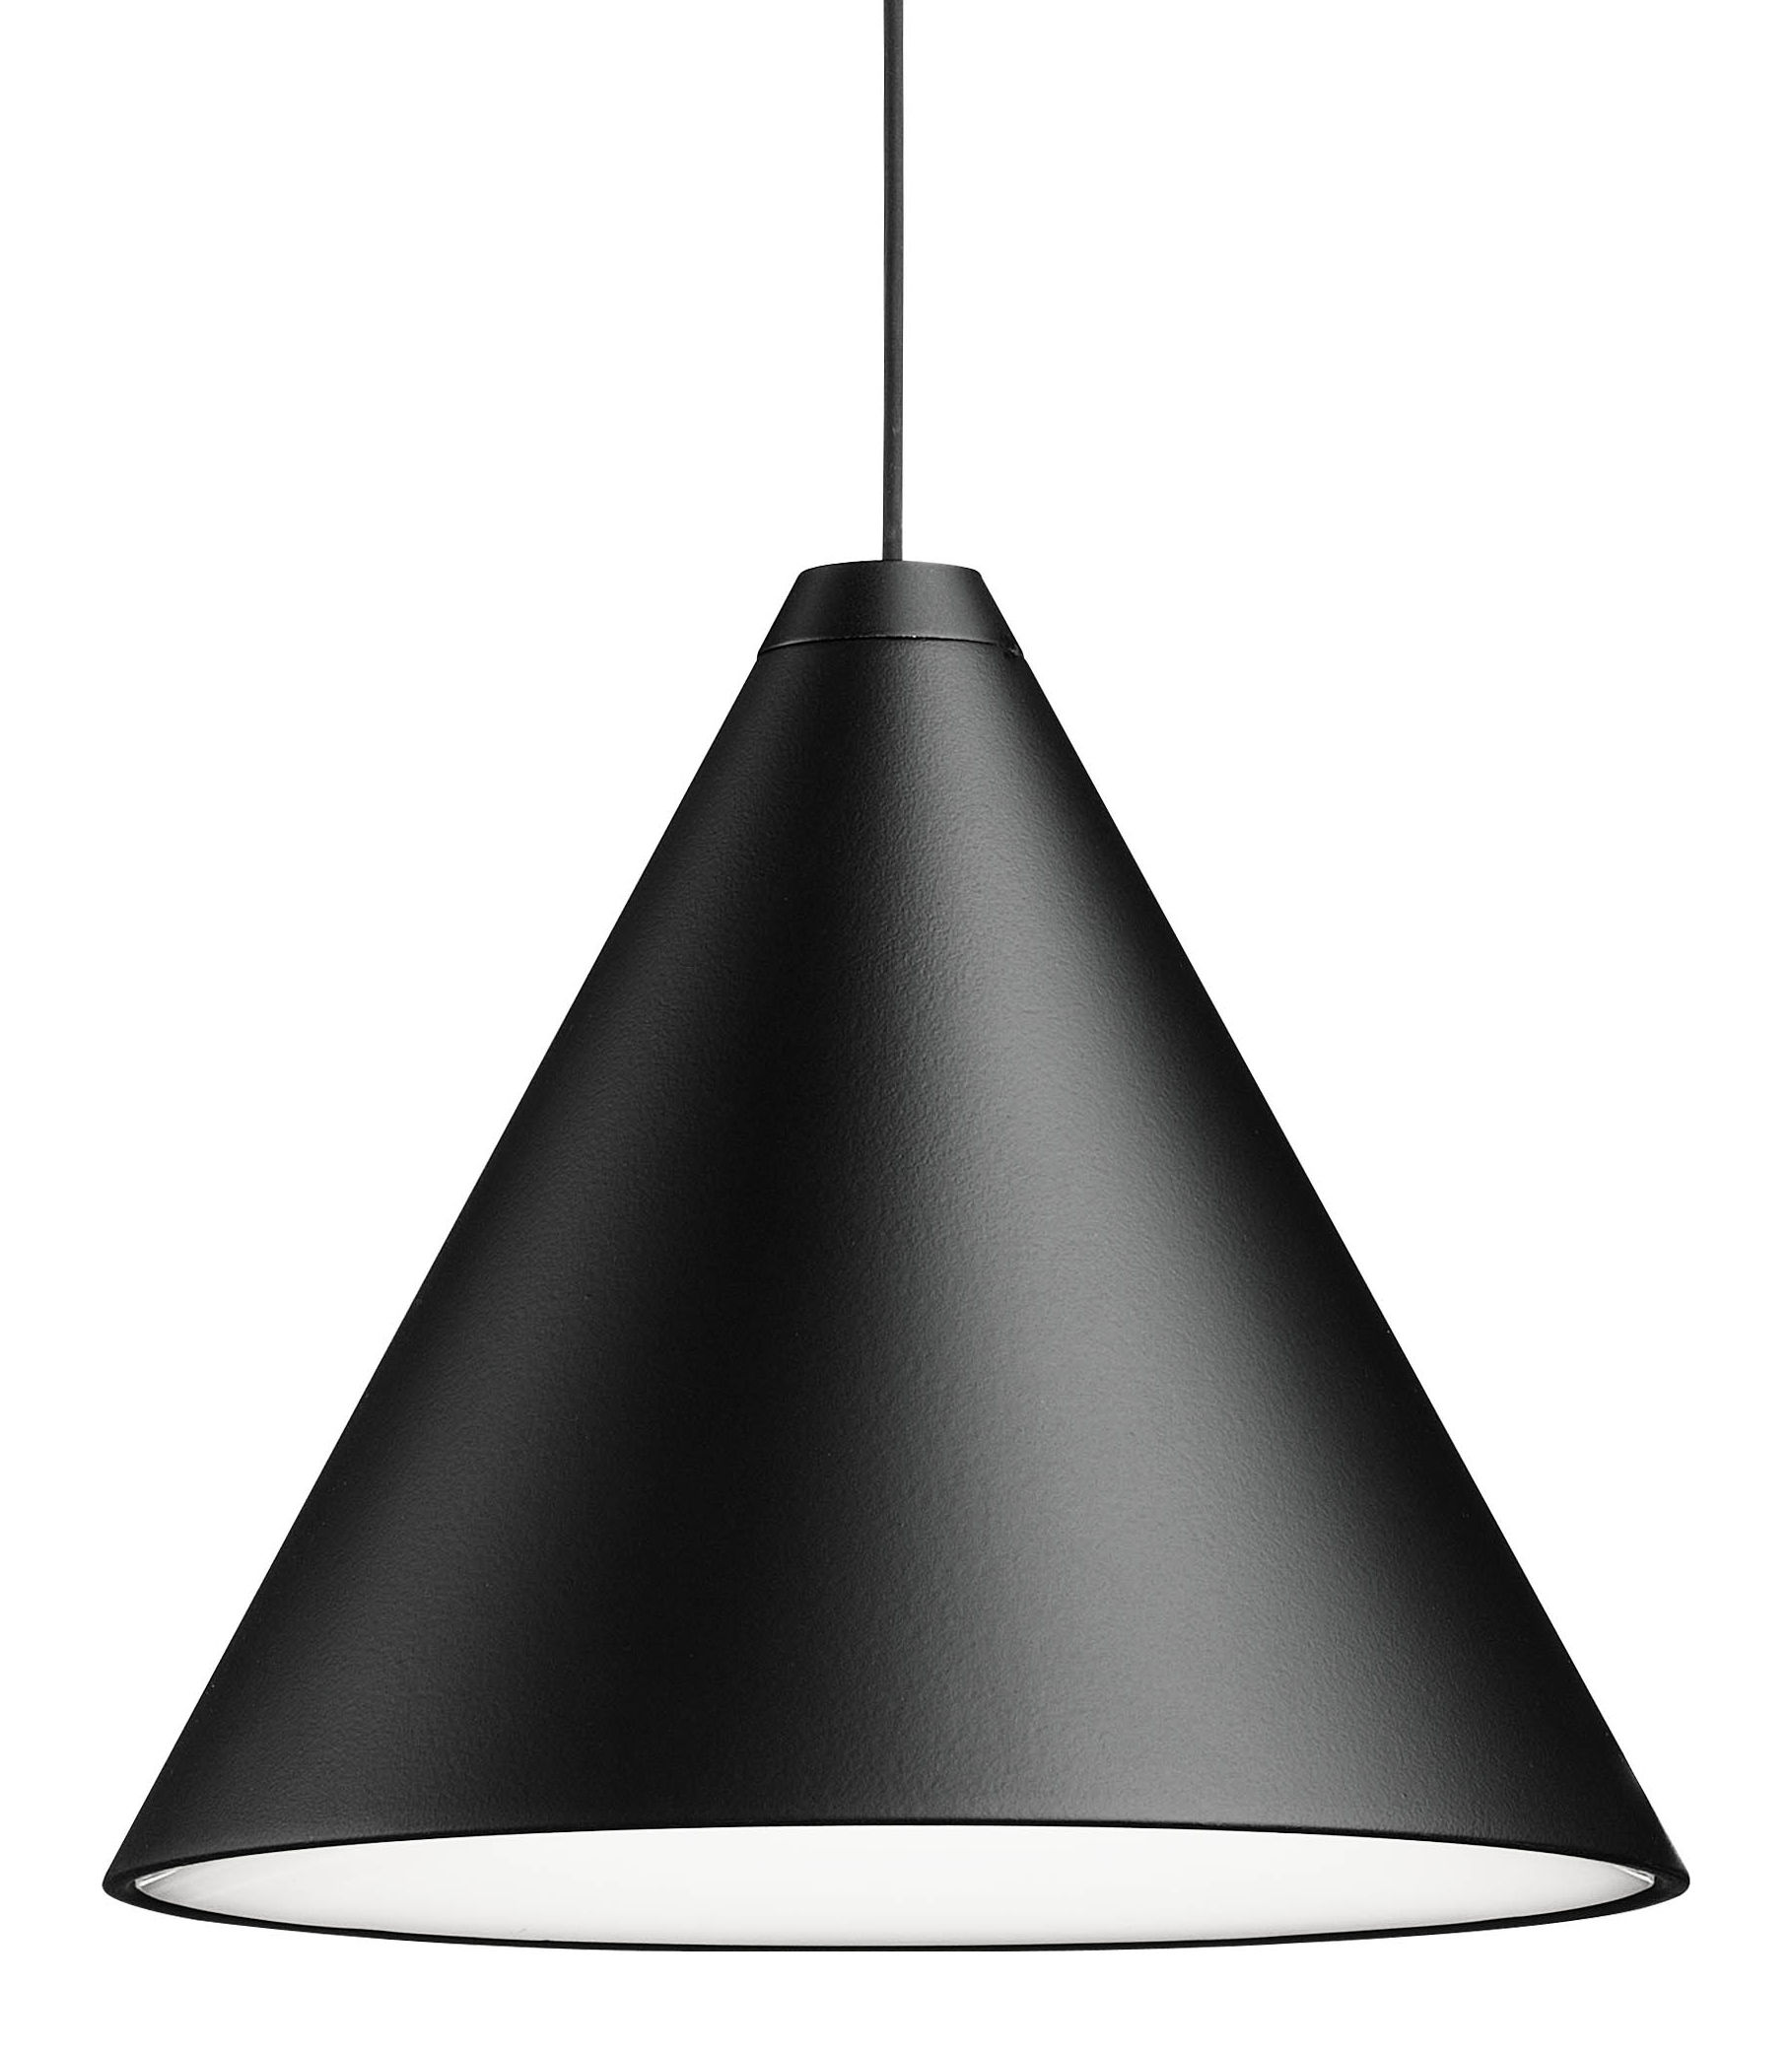 Plafonnier Suspendu Led Suspension String Light Cone Led Câble Décoratif De 12 Mètres Flos